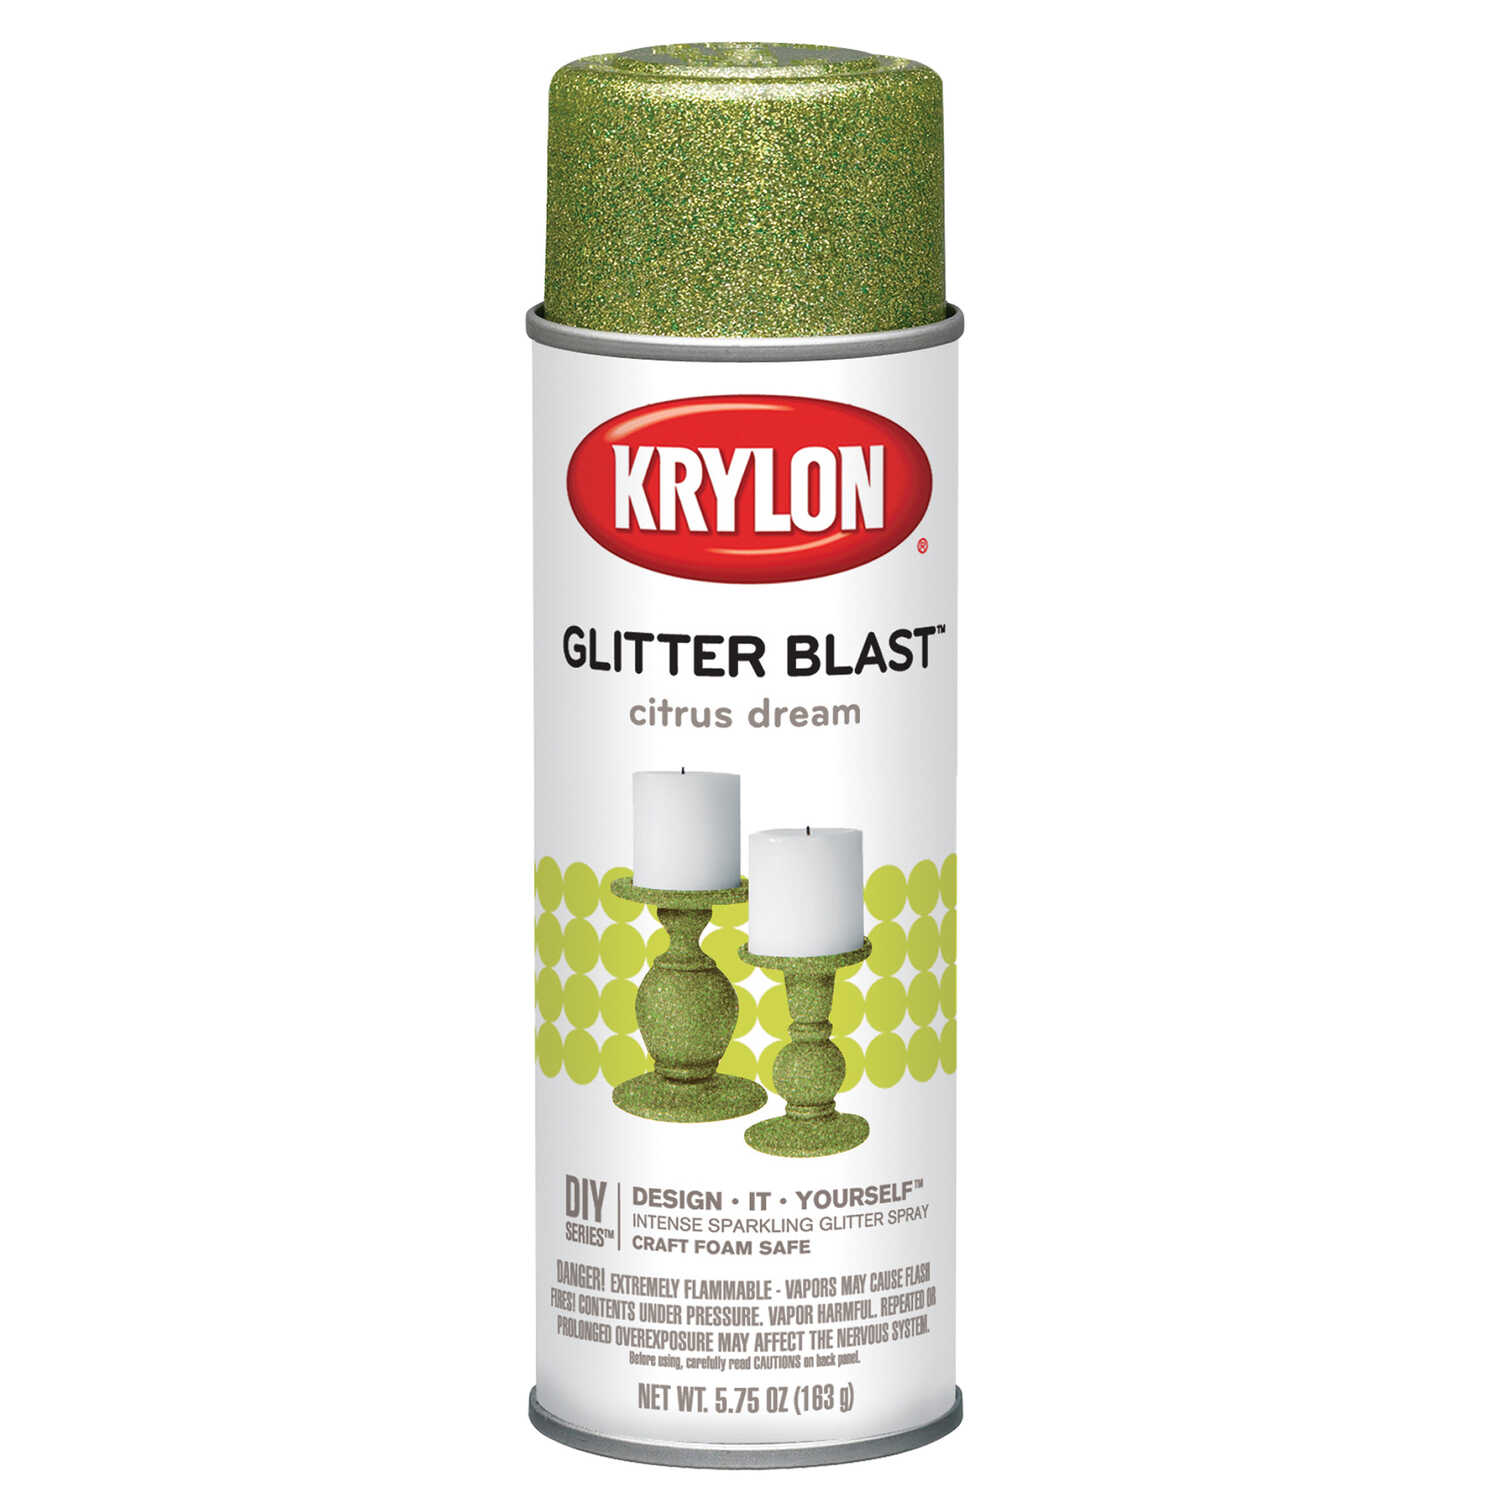 Krylon  Citrus Dream  Glitter Blast Spray Paint  5.75 oz.